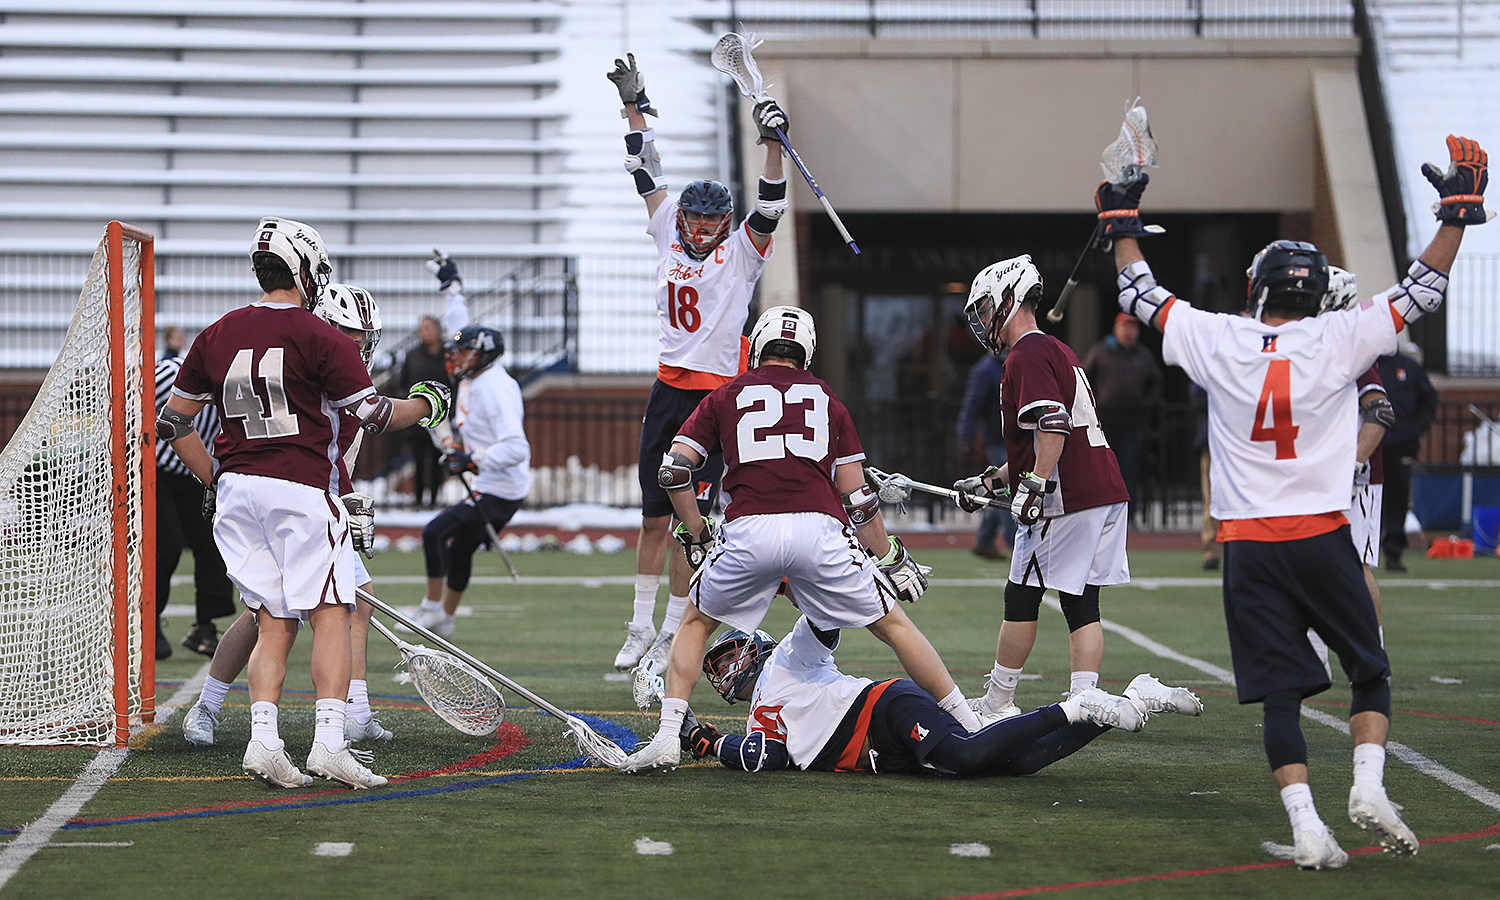 Members of the Hobart lacrosse team celebrate after a diving goal by Justin Scott '20. Scott scored a career-high six goals, tying the record for a Statesman in a Division I game.